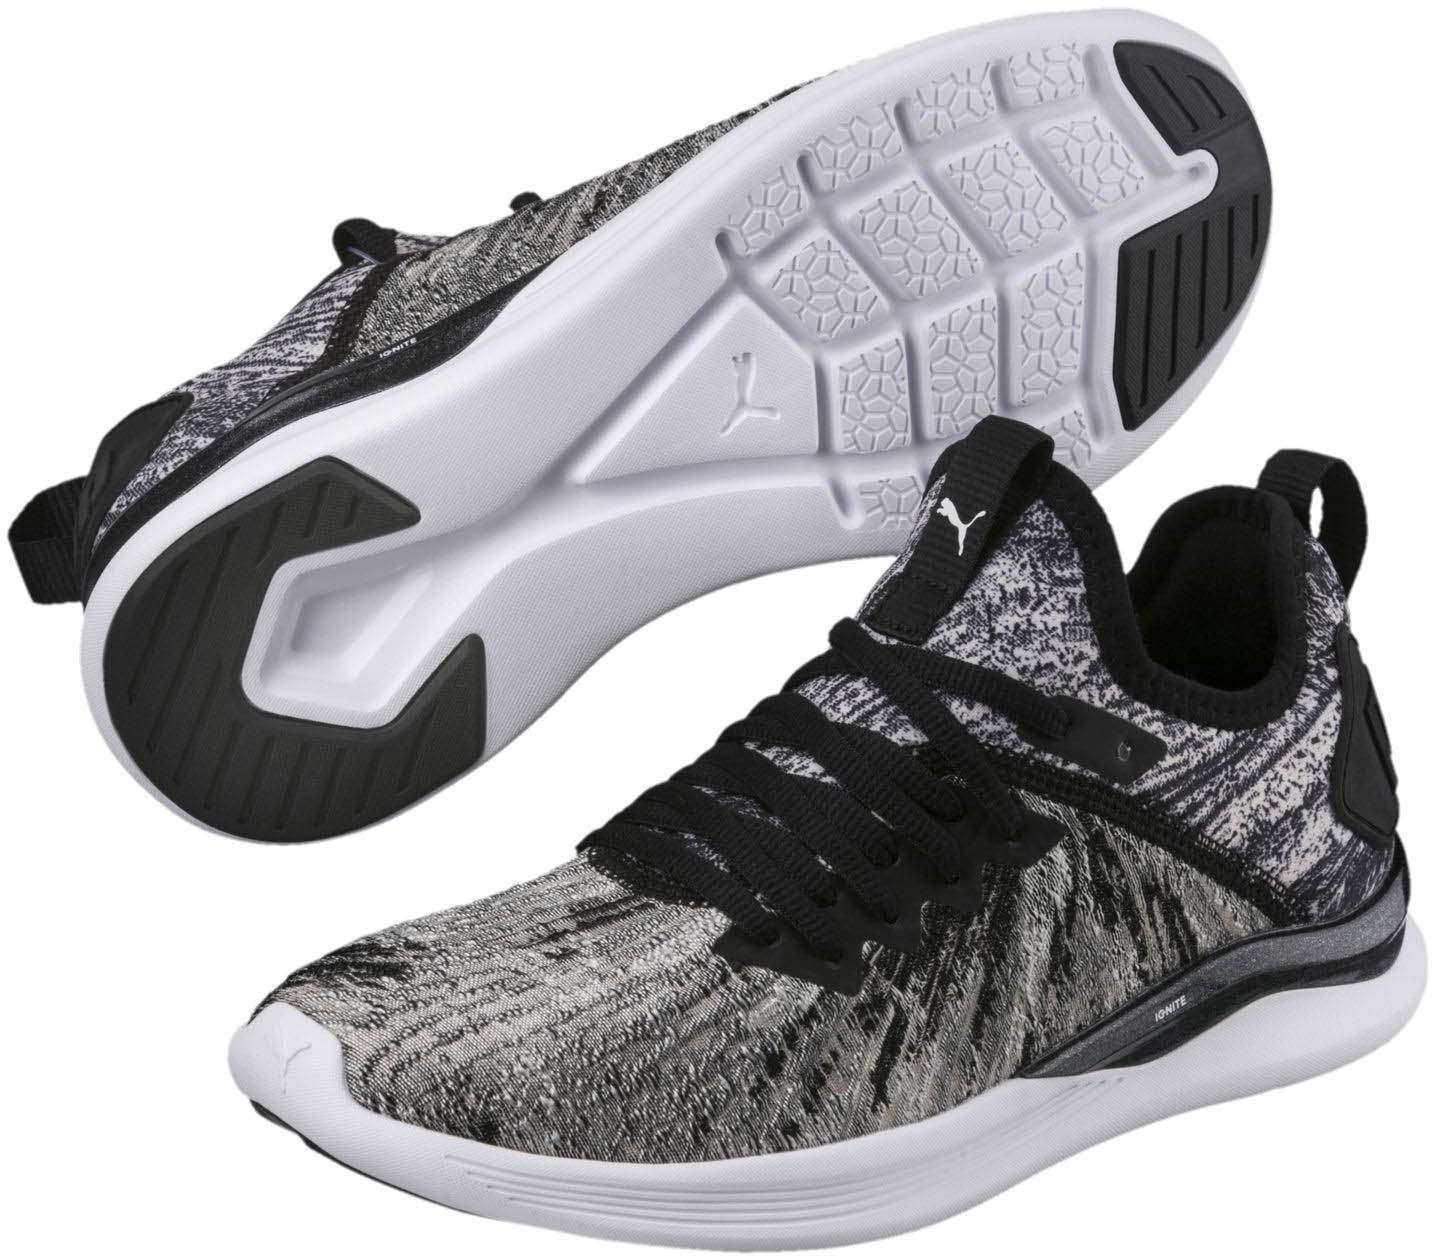 PUMA Women's Ignite Flash Geo Sneaker B078C8CN5K 5.5 M US|Puma Black-puma White